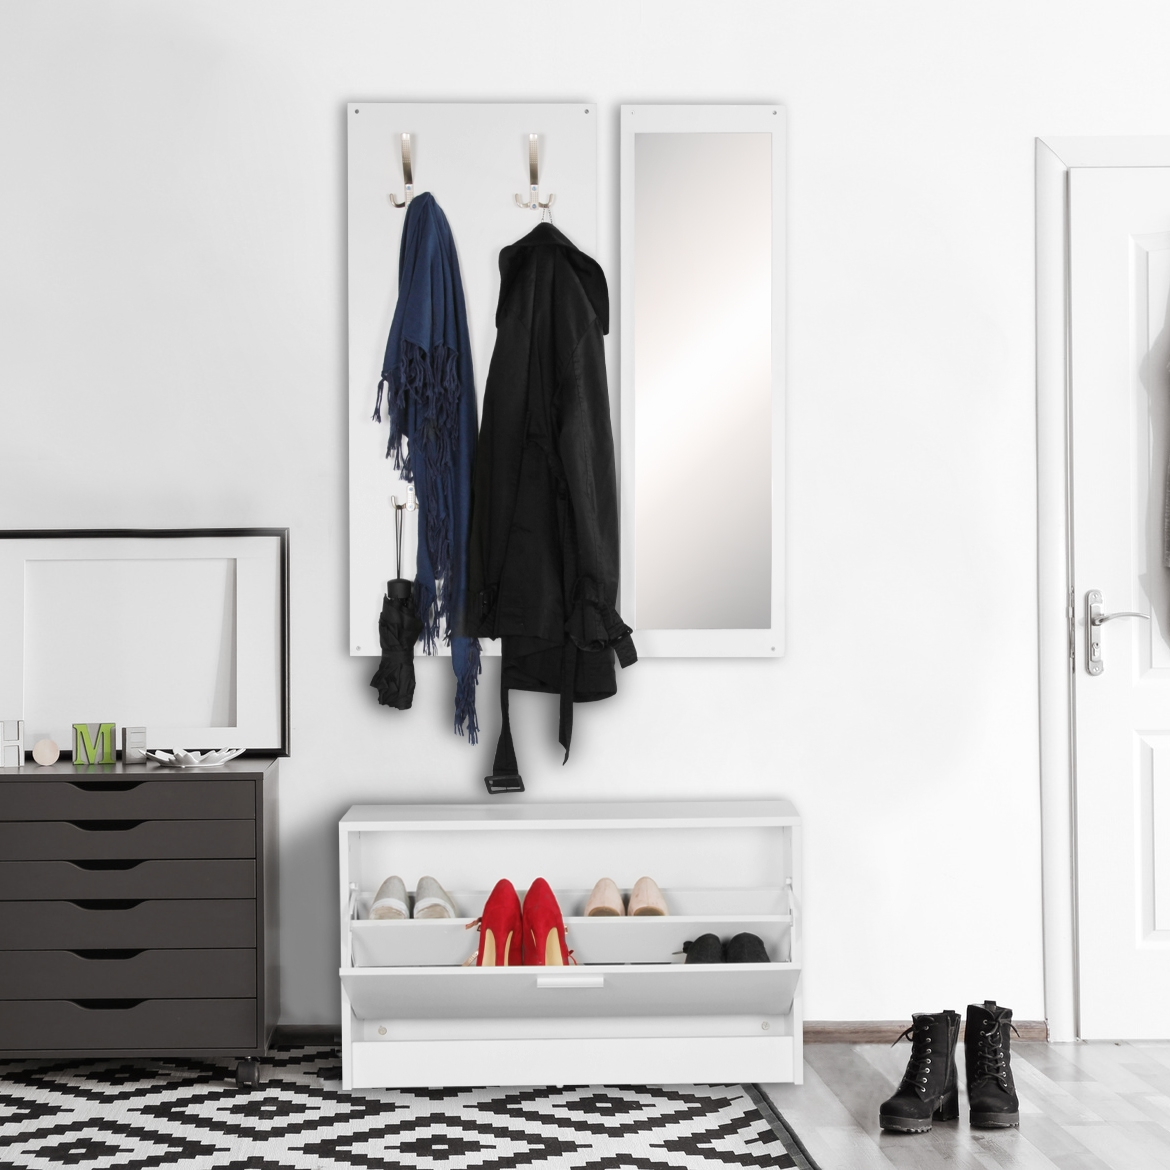 garderobe mit spiegel wohn design. Black Bedroom Furniture Sets. Home Design Ideas